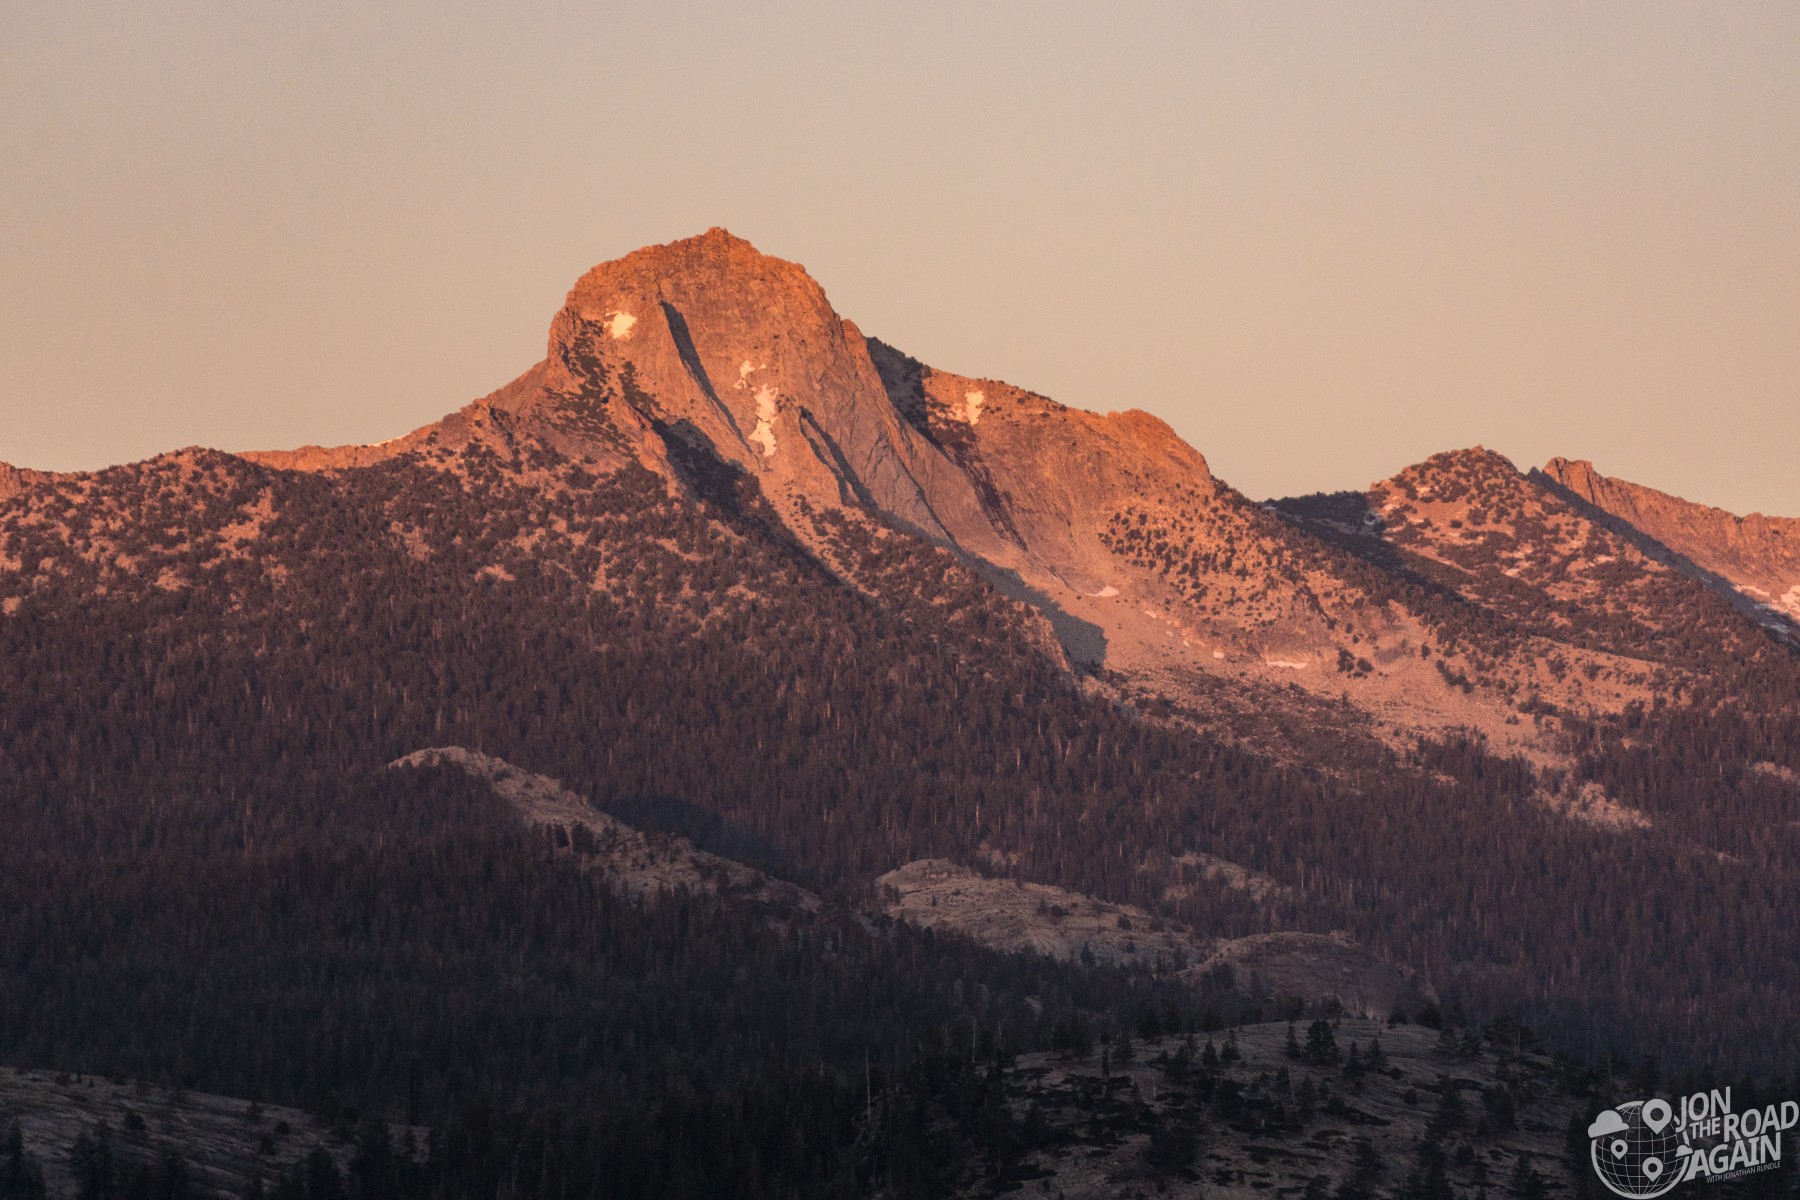 Alpenglow on Sierra Nevada